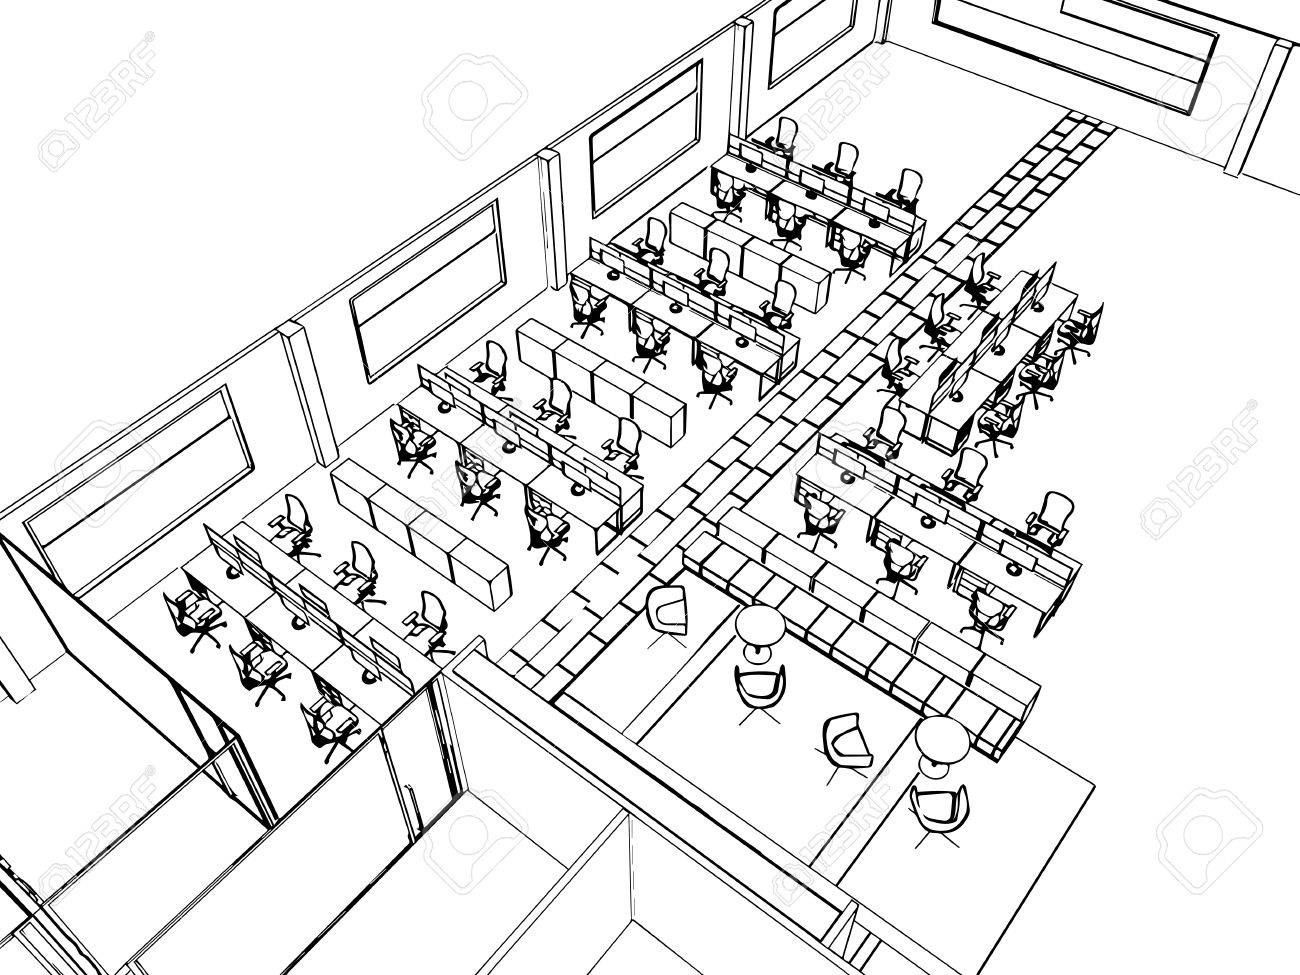 1300x975 Outline Sketch Drawing Perspective Of A Interior Space Office